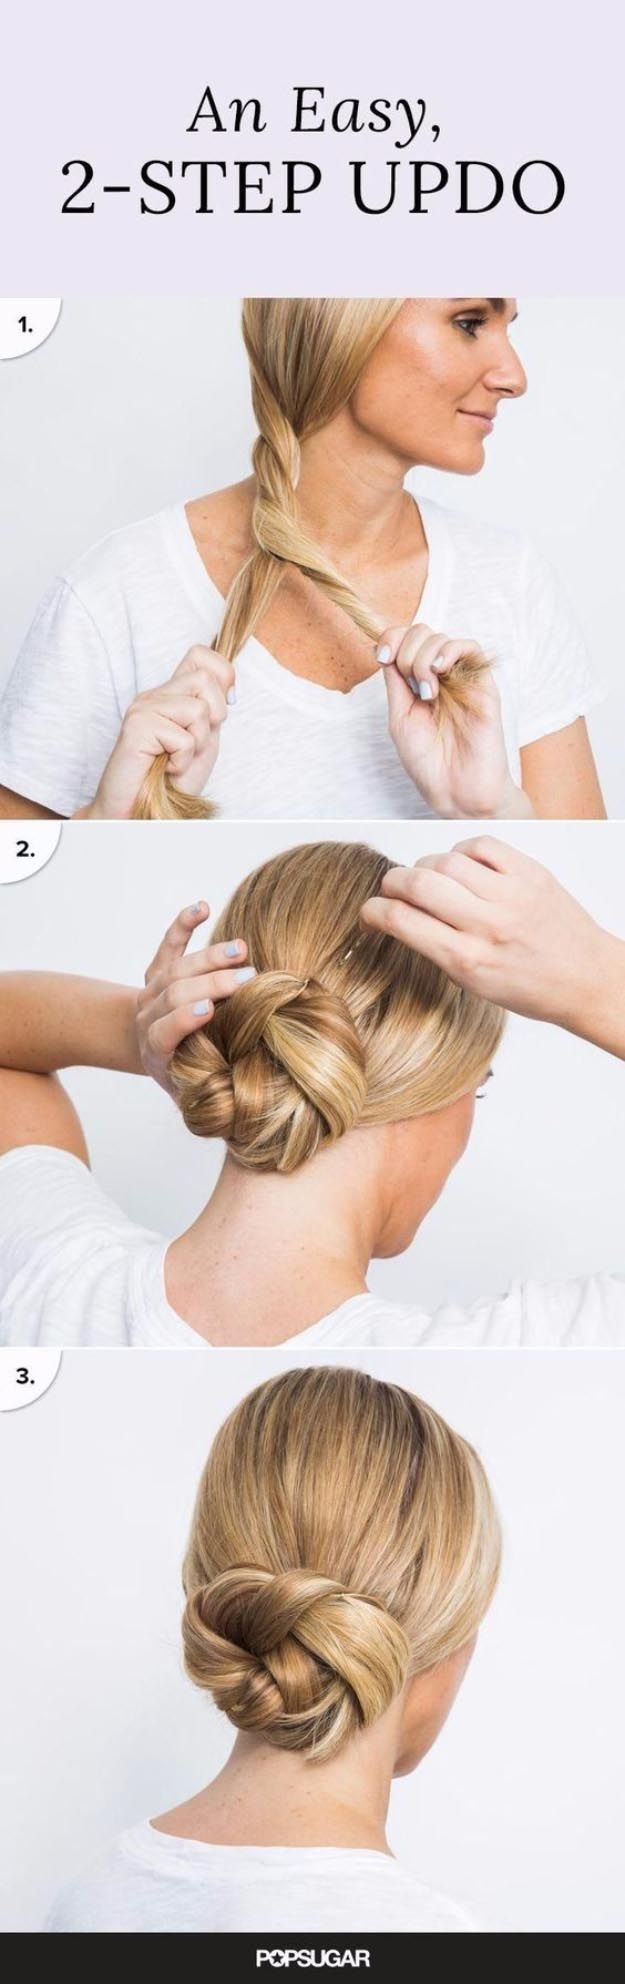 Long hair styles for an easy step updo easy tutorials for